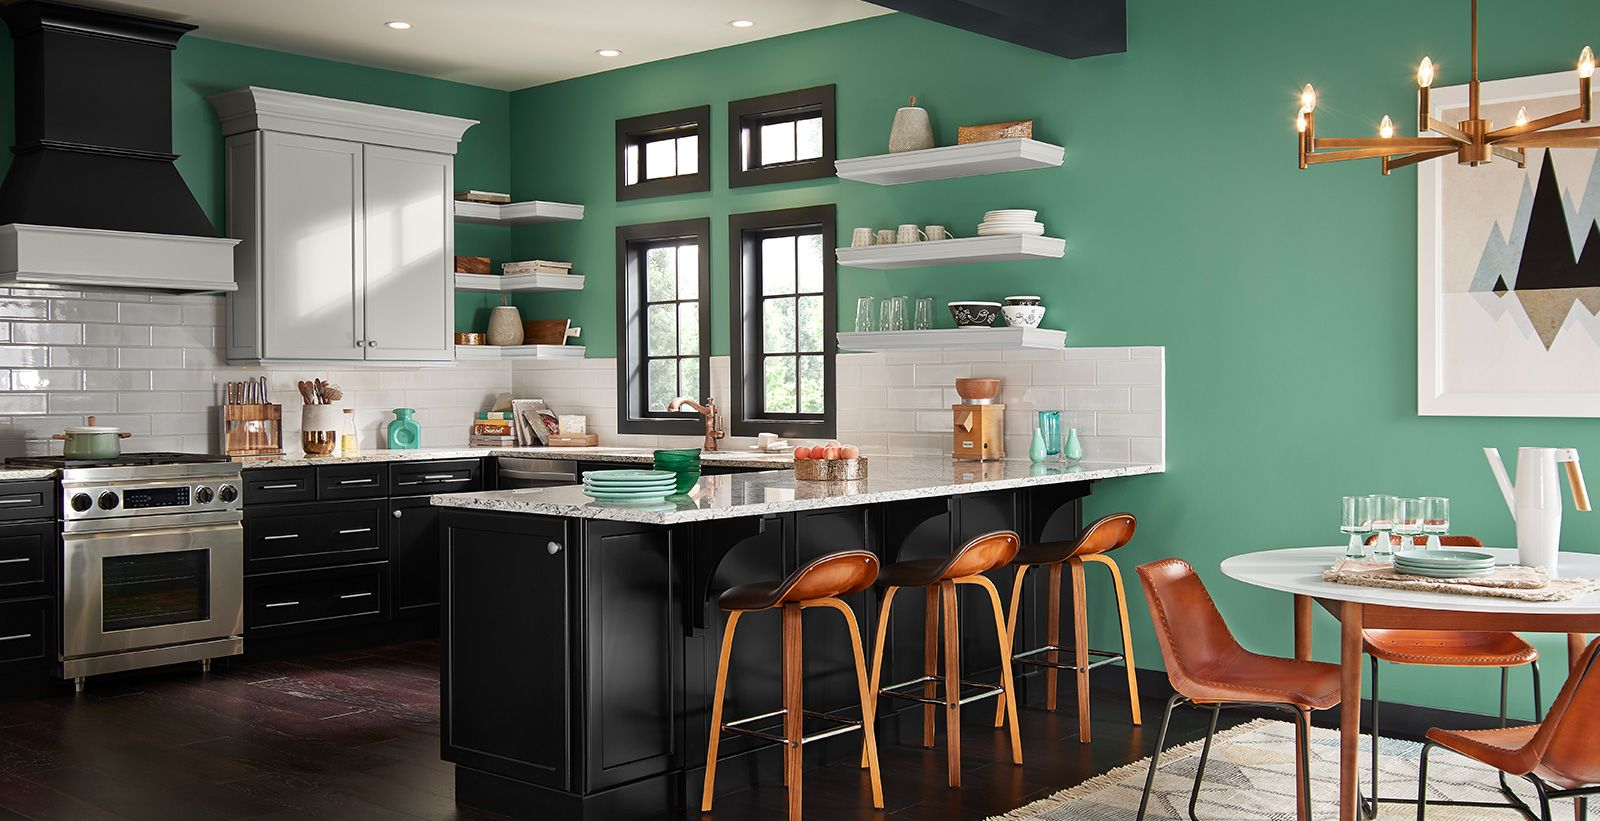 Bold Kitchen Wall Colors Ideas And Inspiration Behr European Home Decor Popular Kitchen Colors Home Decor Bold kitchen paint colors